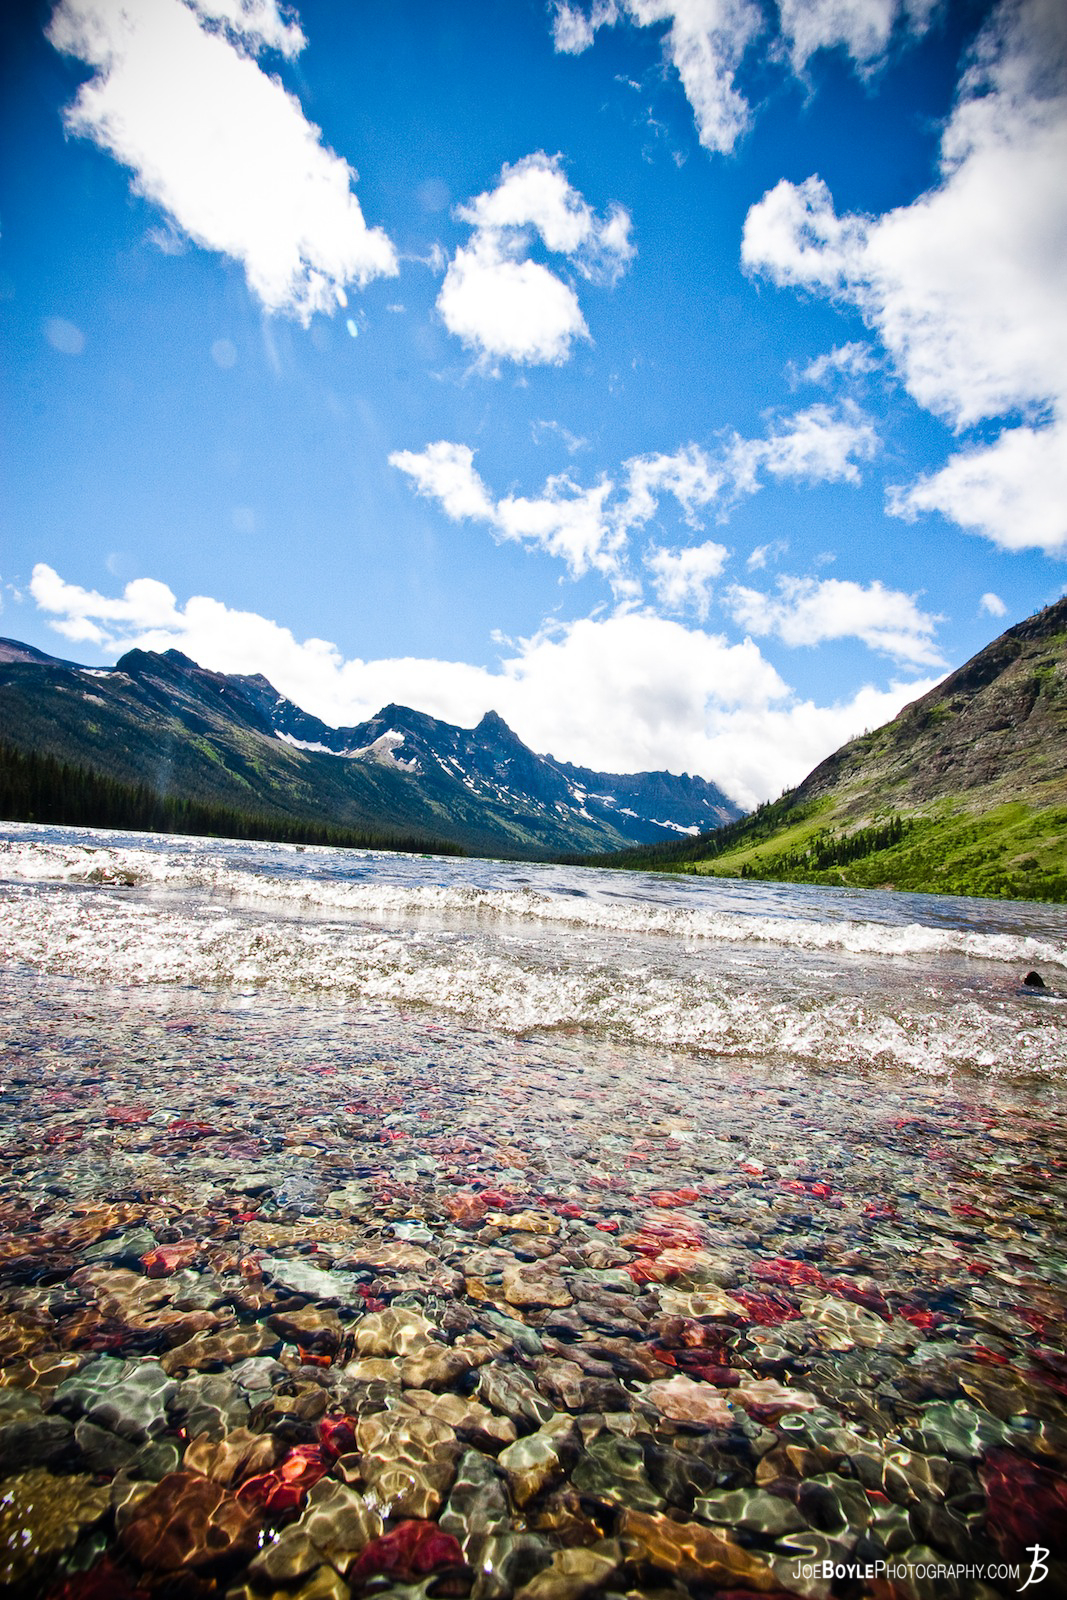 I captured this image of a Lake in Glacier National Park (GNP). I really liked how clear the water was and the colorful stones that were so close to shore! The water was cold!